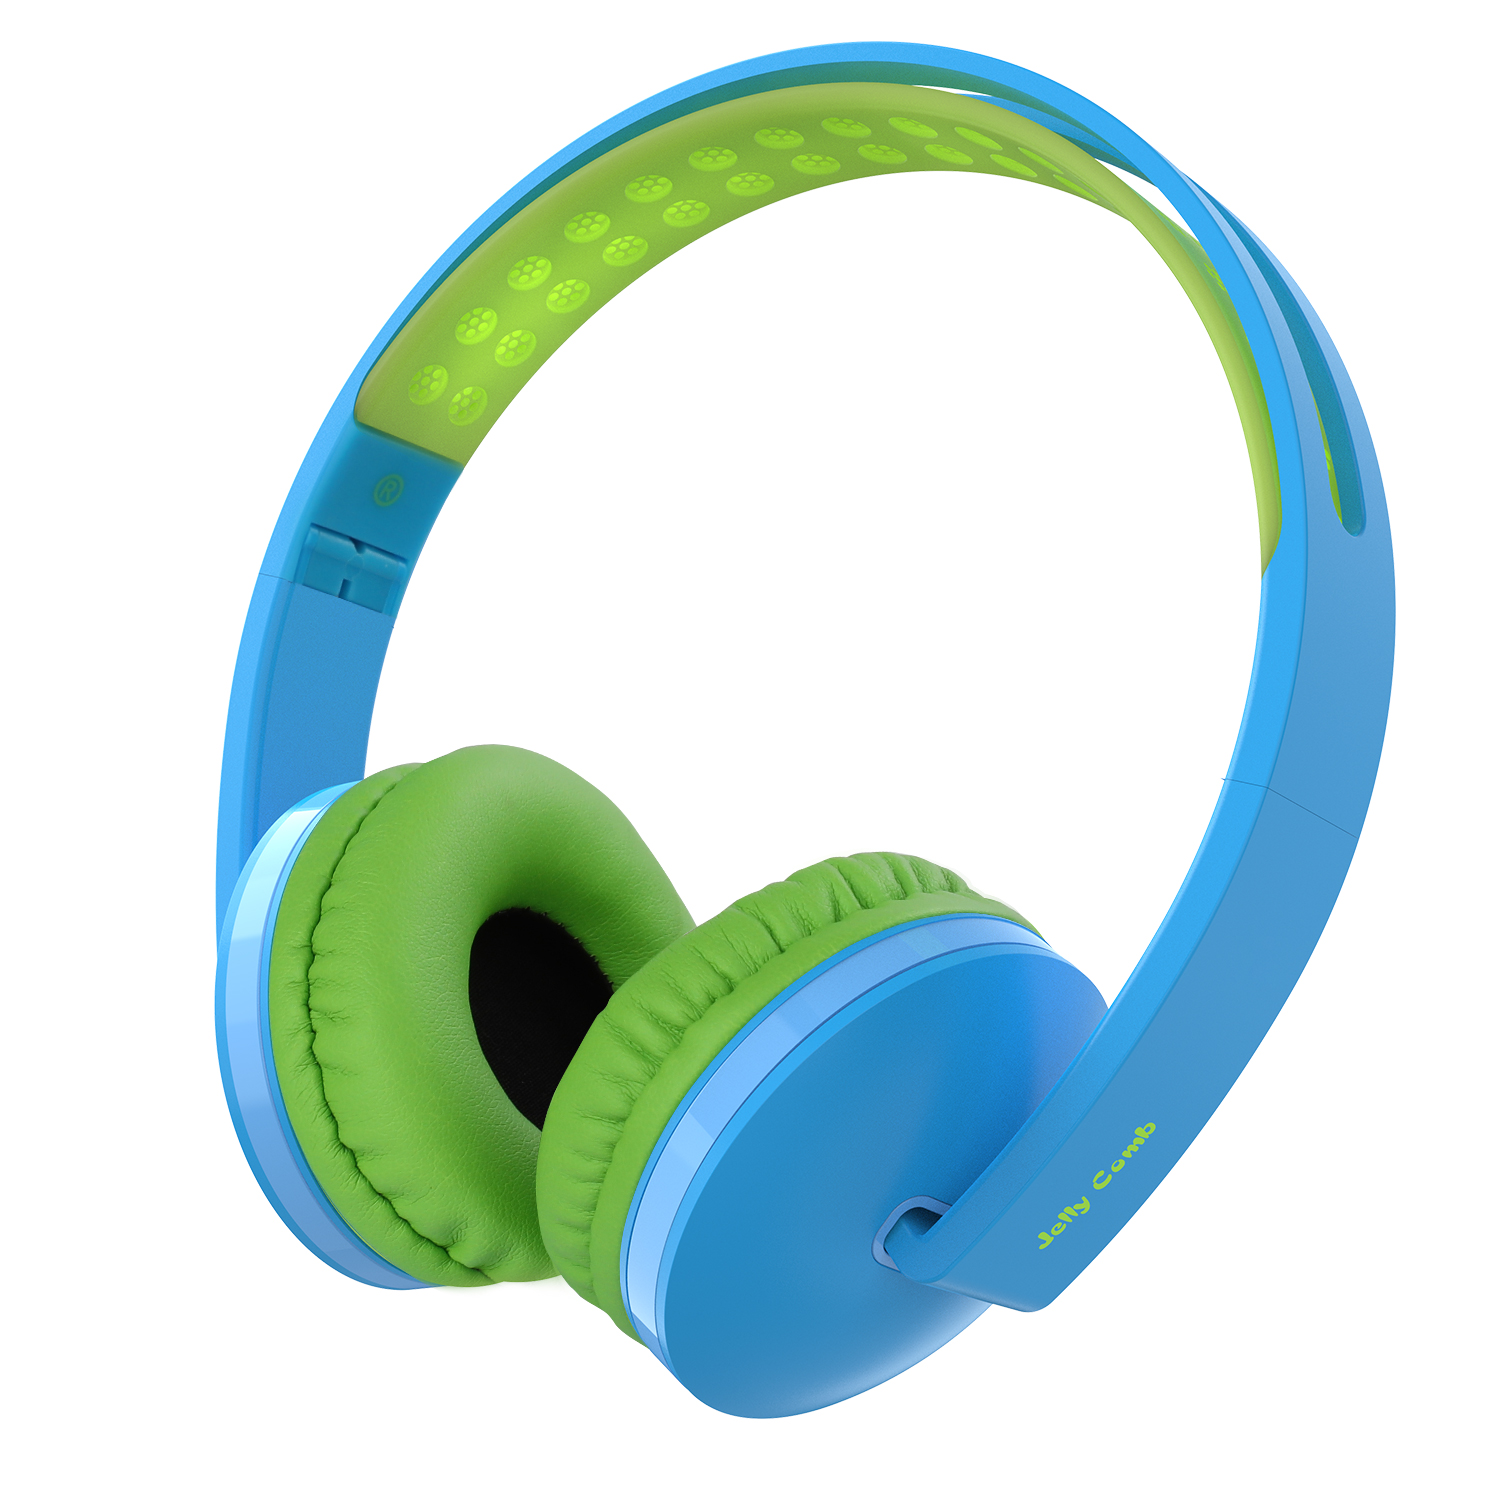 On Ear Headphones with Mic, Jelly Comb Foldable Corded Headphones Wired Headsets with Microphone, Volume Control for Cell Phone, Tablet, PC, Laptop, MP3/4, Video Game (Sky Blue & Grass Green)